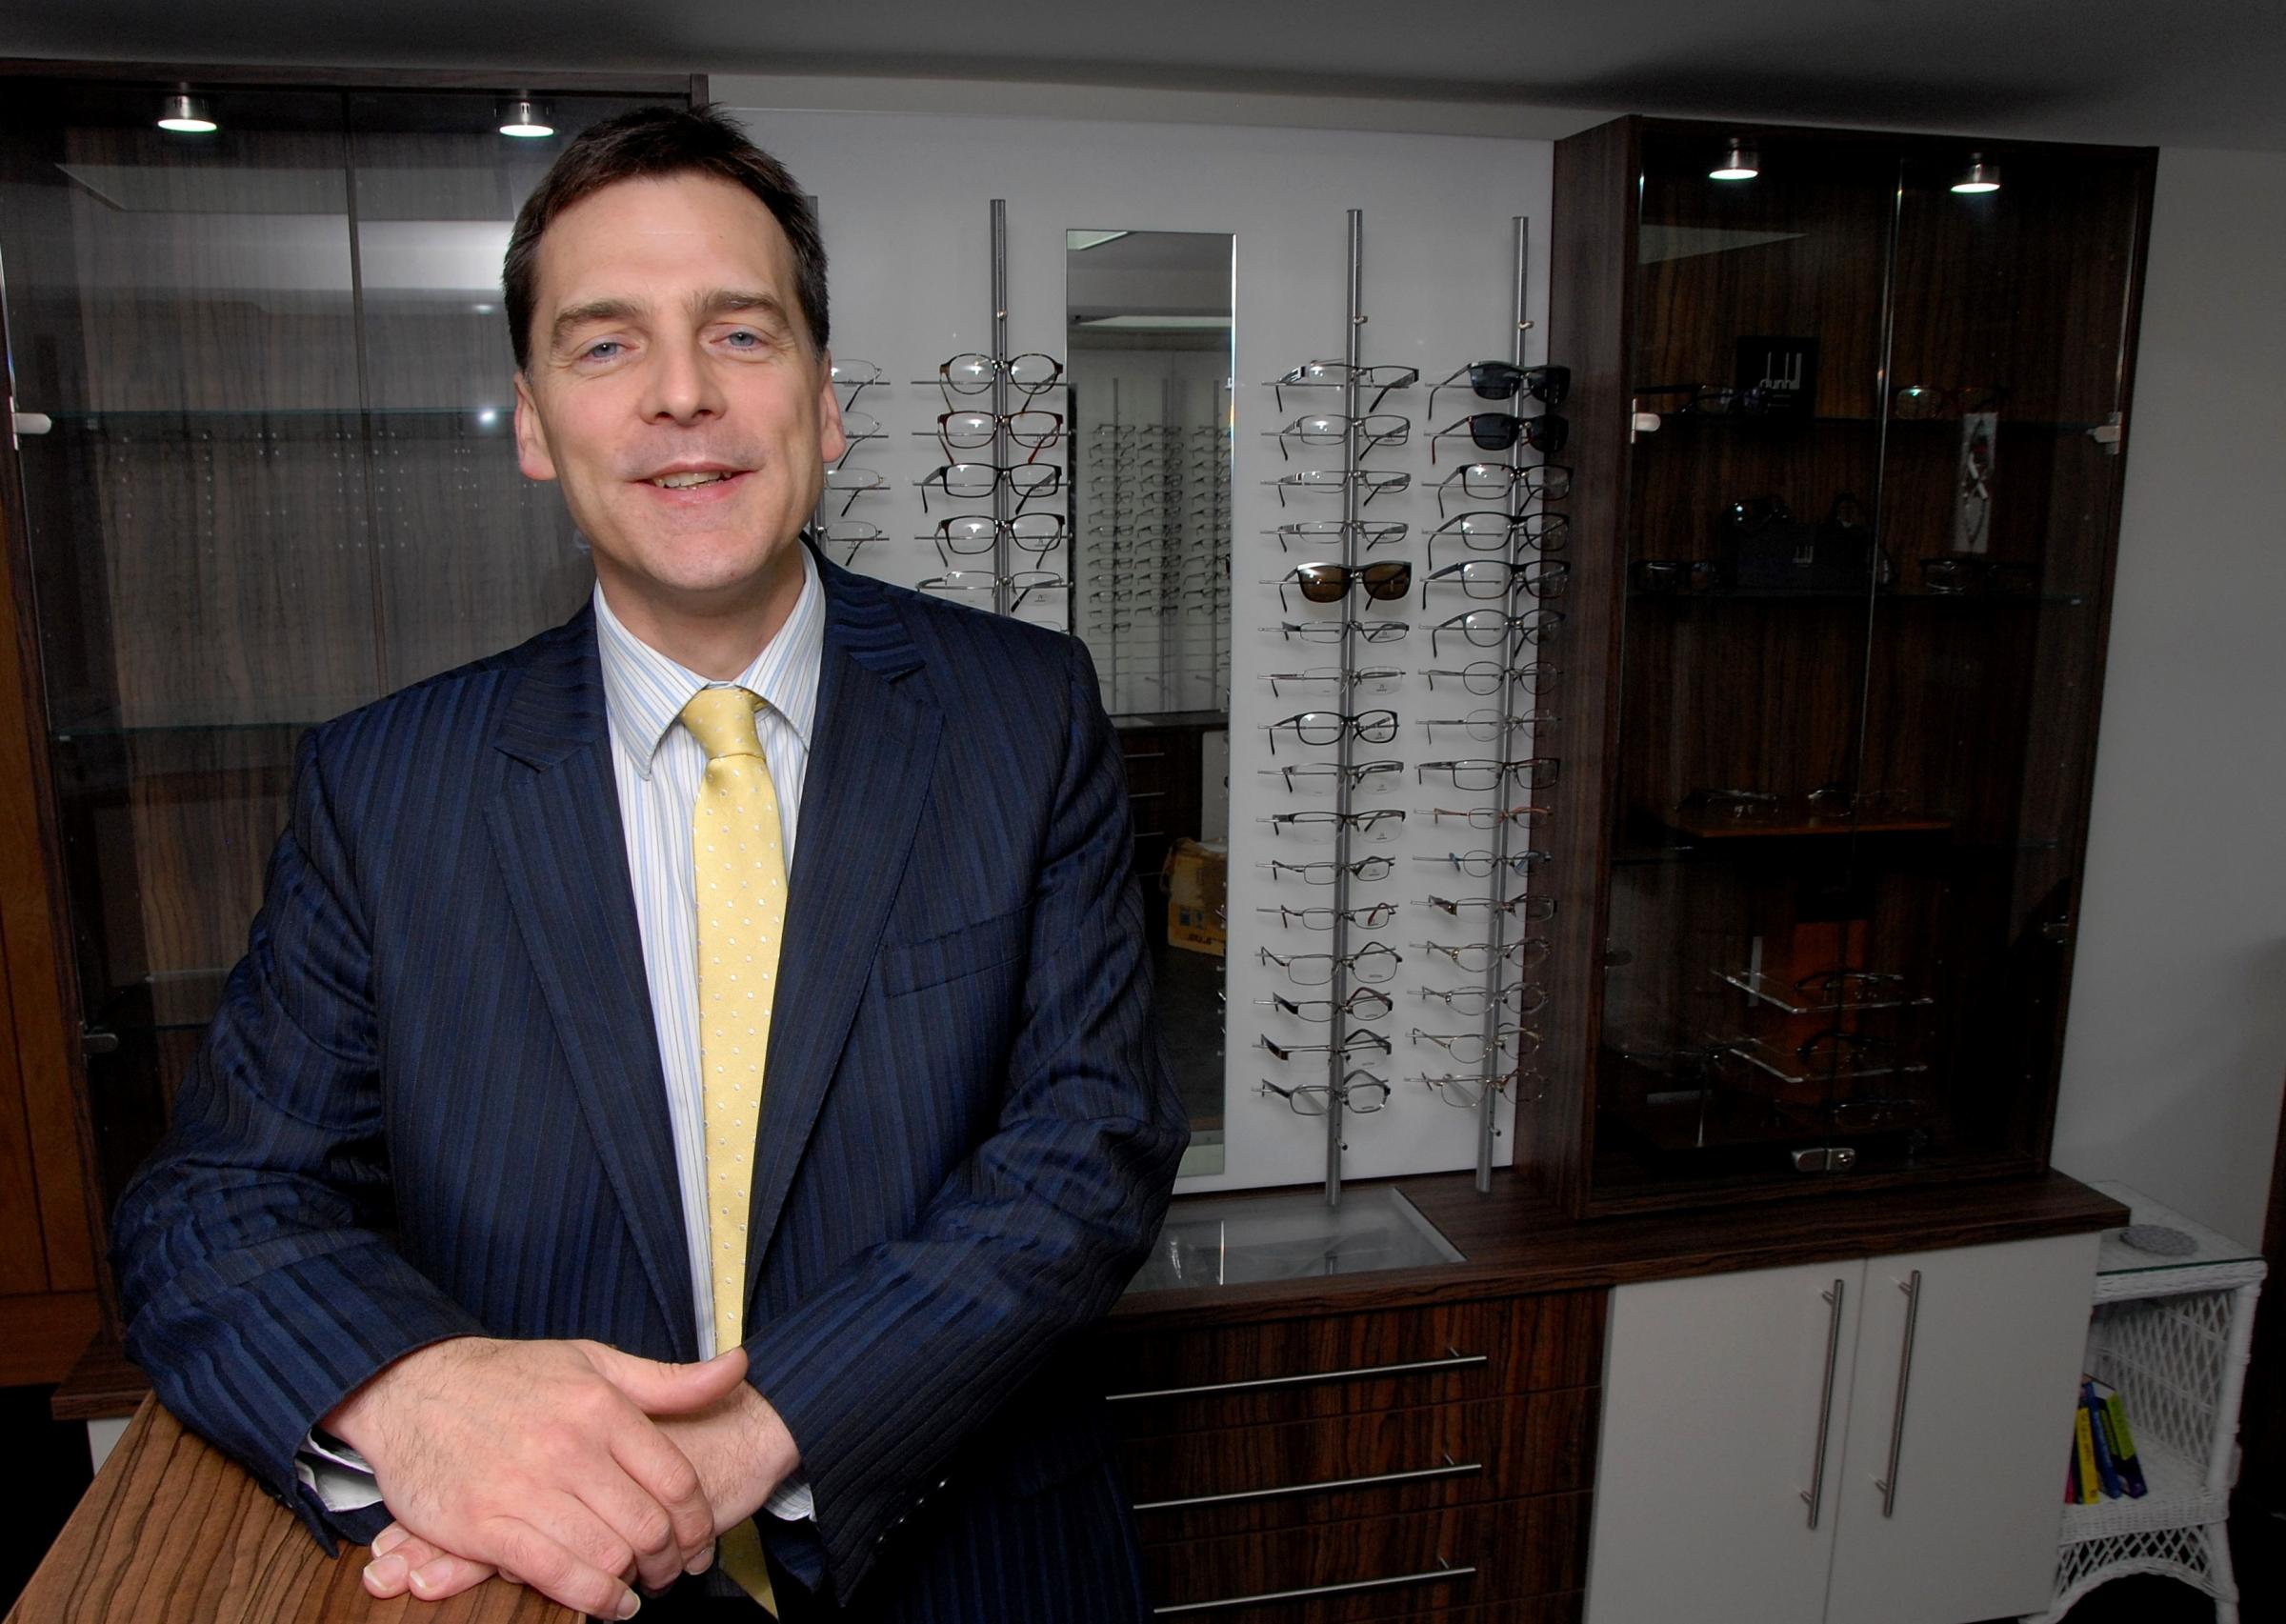 Optician inspired to open new business by patients